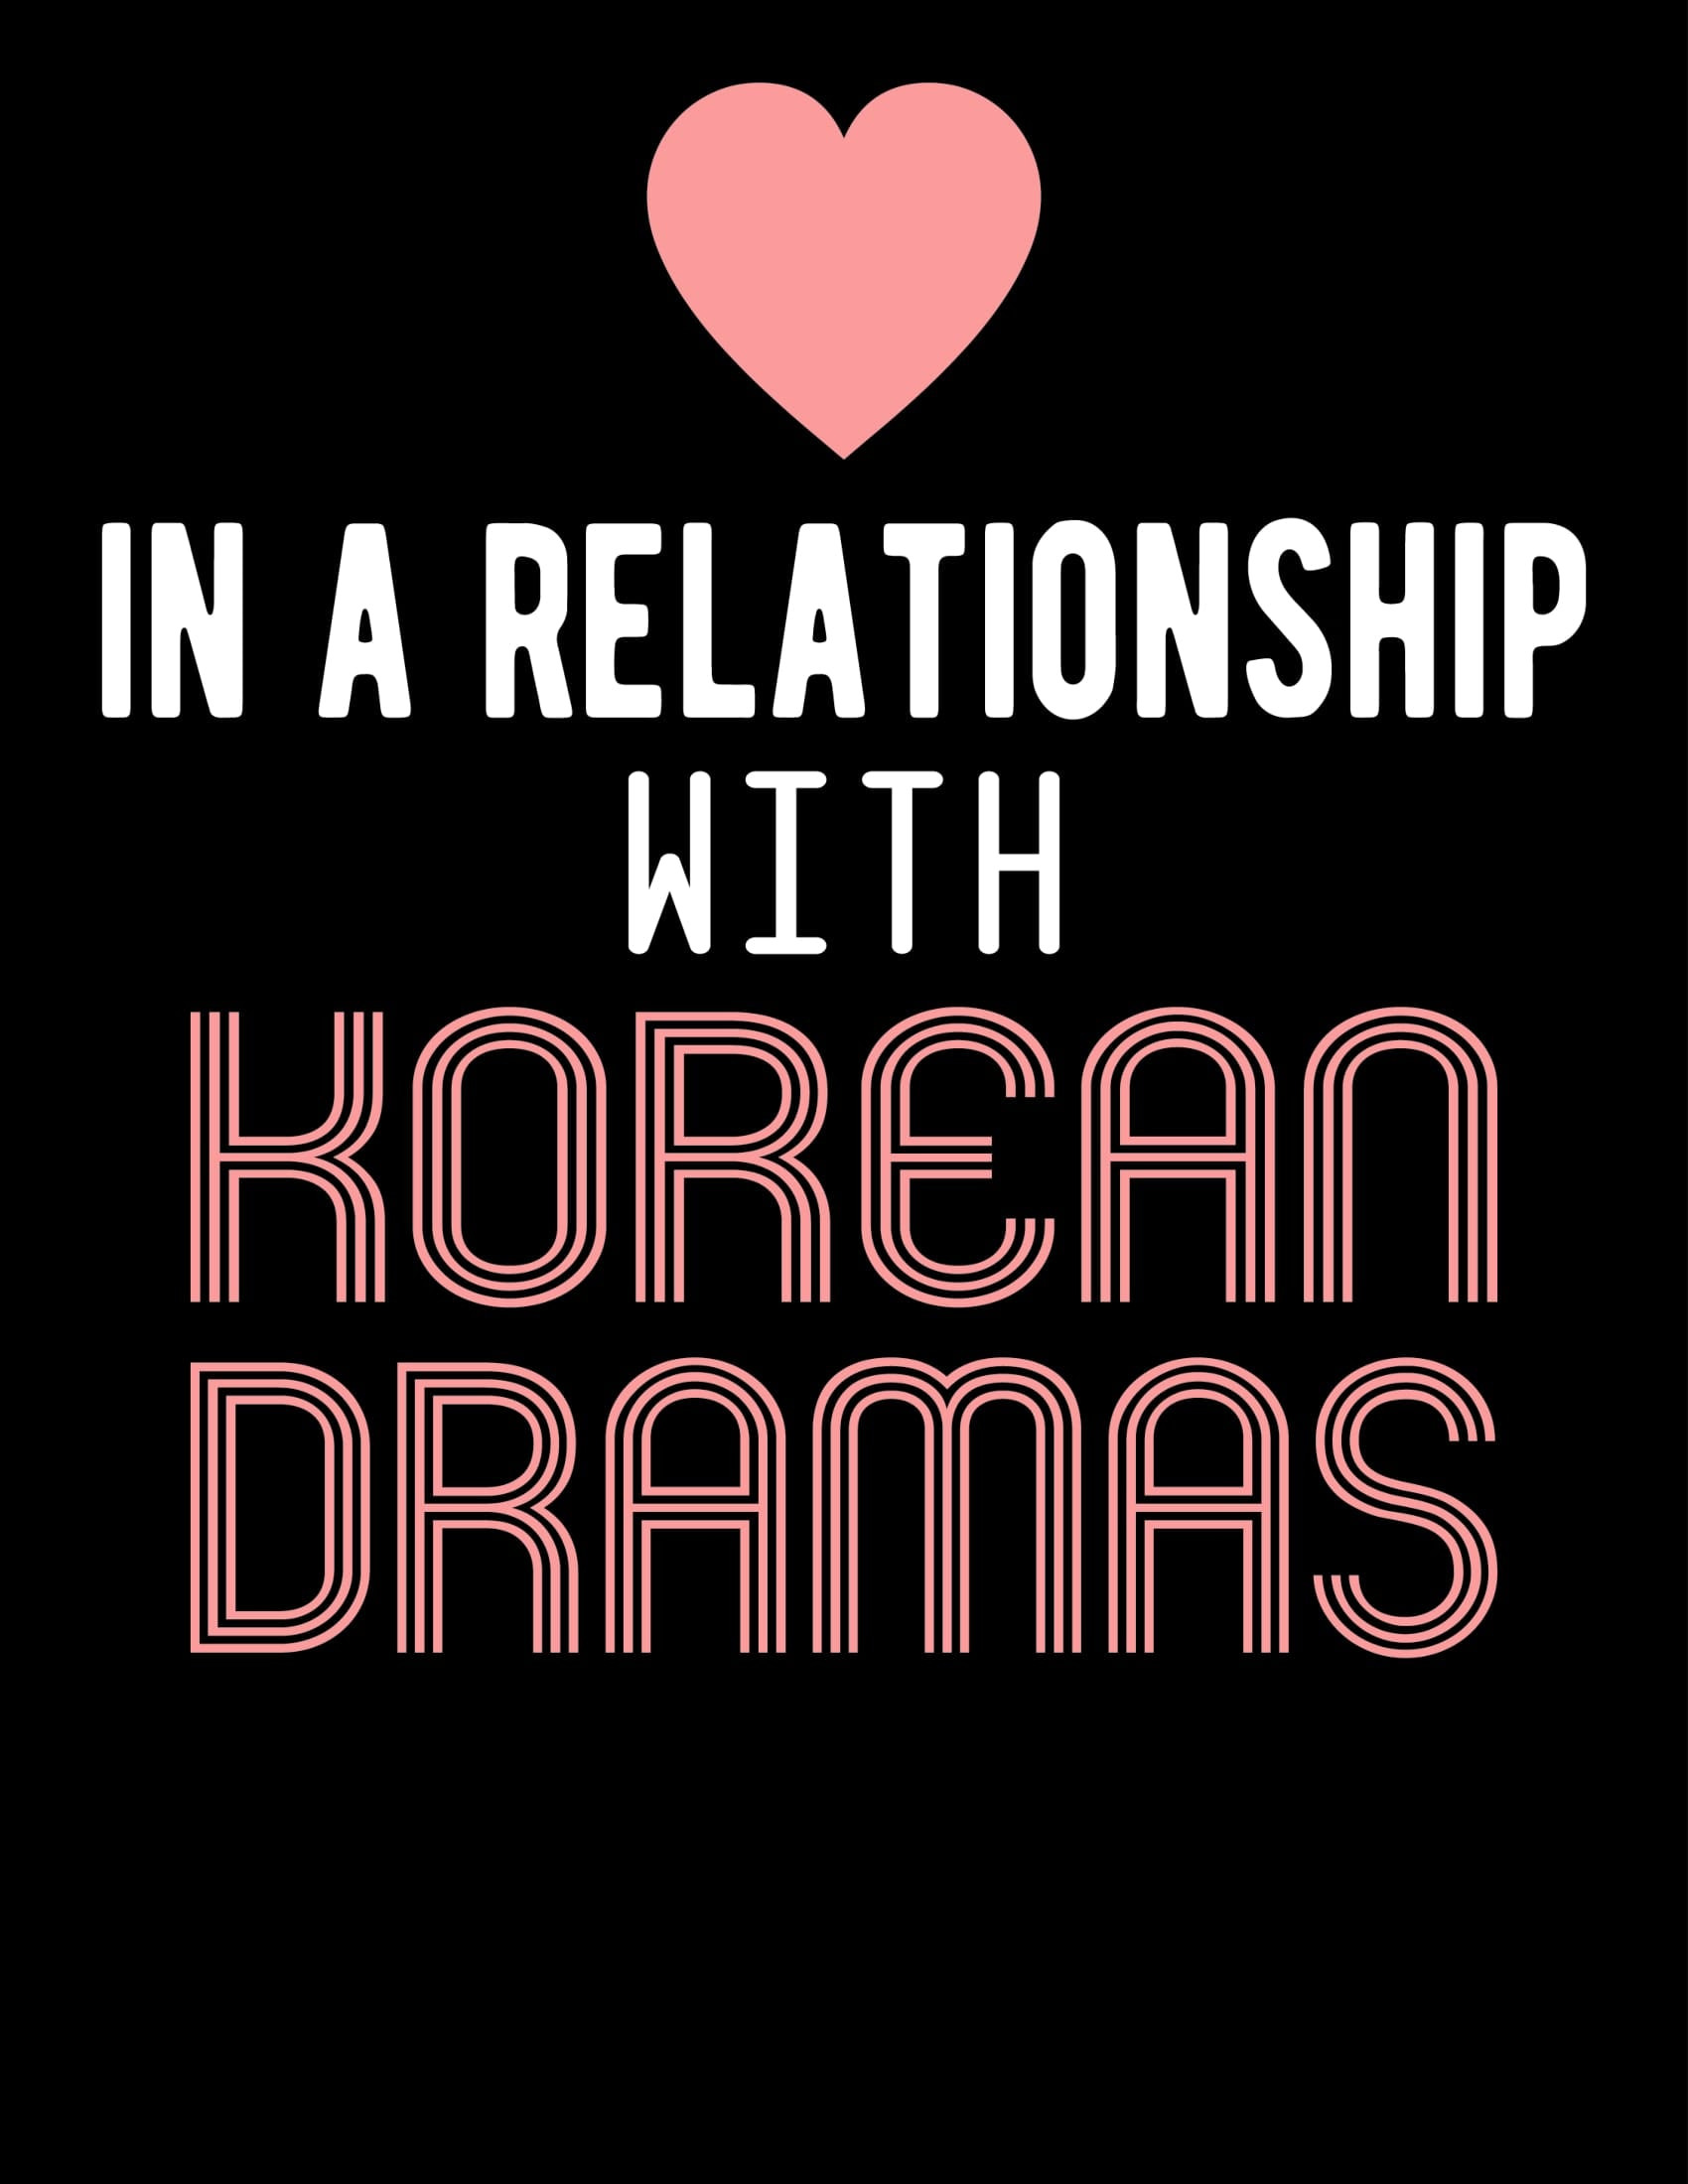 In a Relationship with Korean Dramas